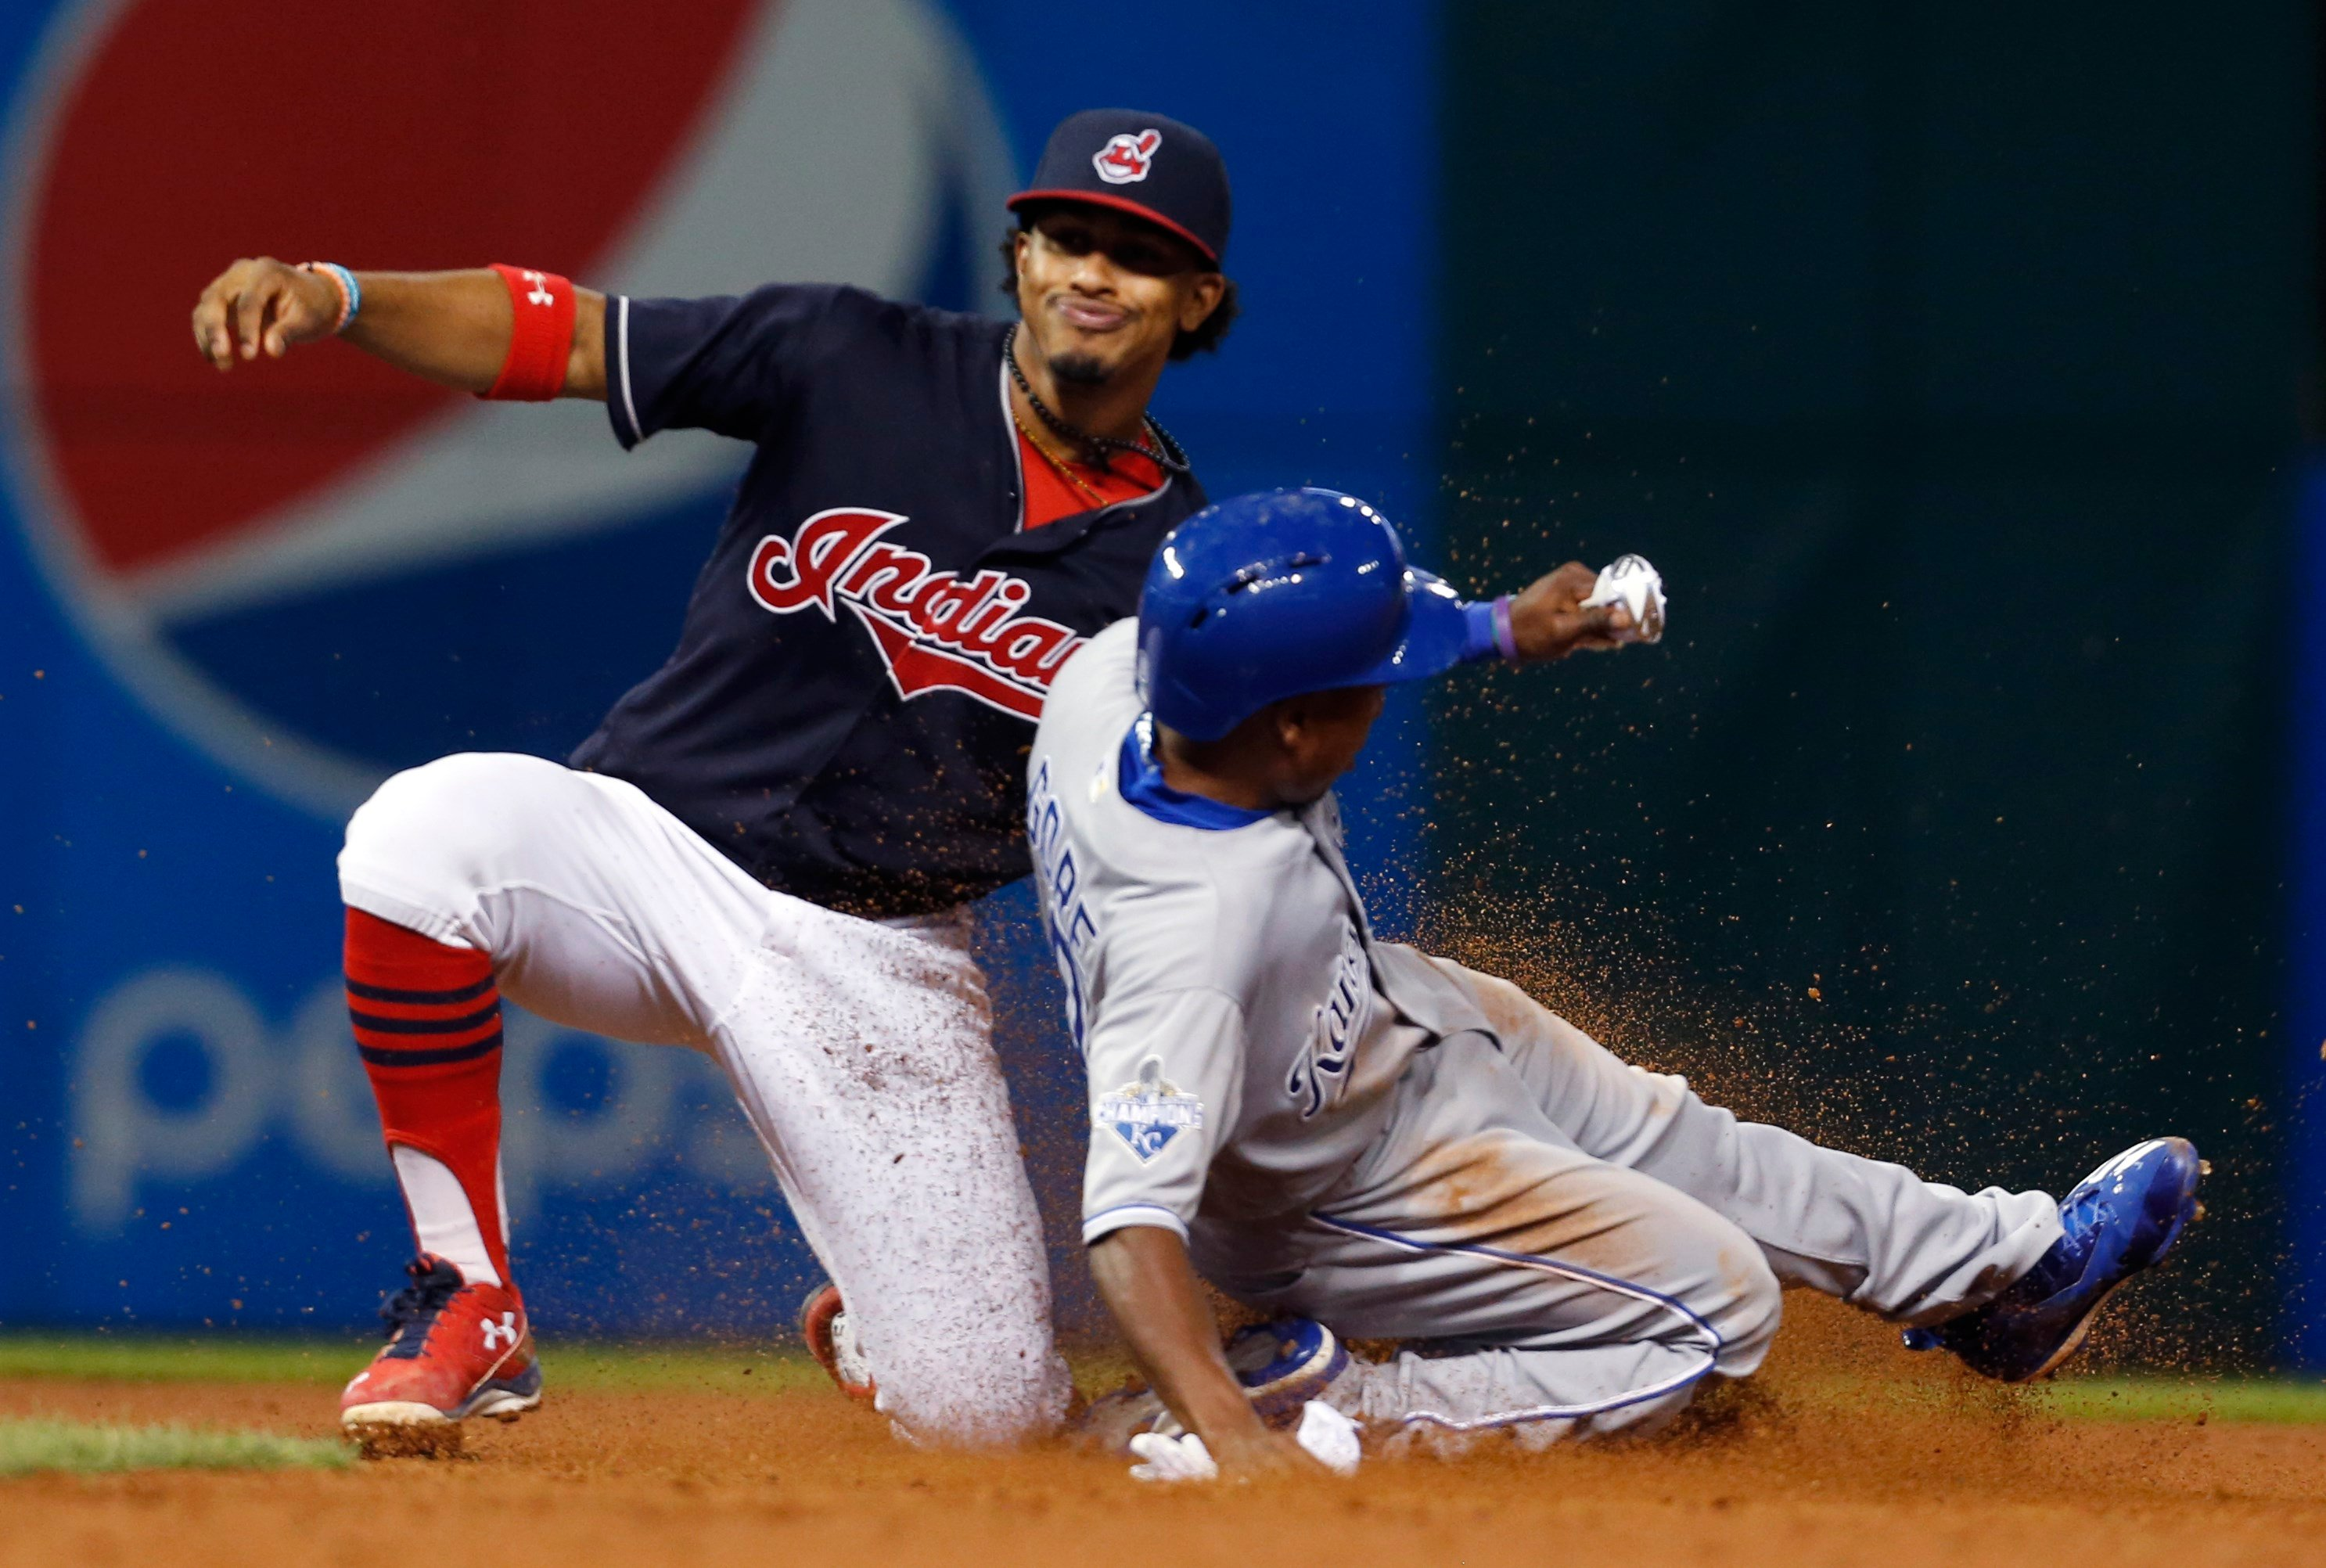 The Indians, who led Detroit by seven games in the division going into Wednesday, reduced their magic number for clinching the Central to five. (AP Photo)